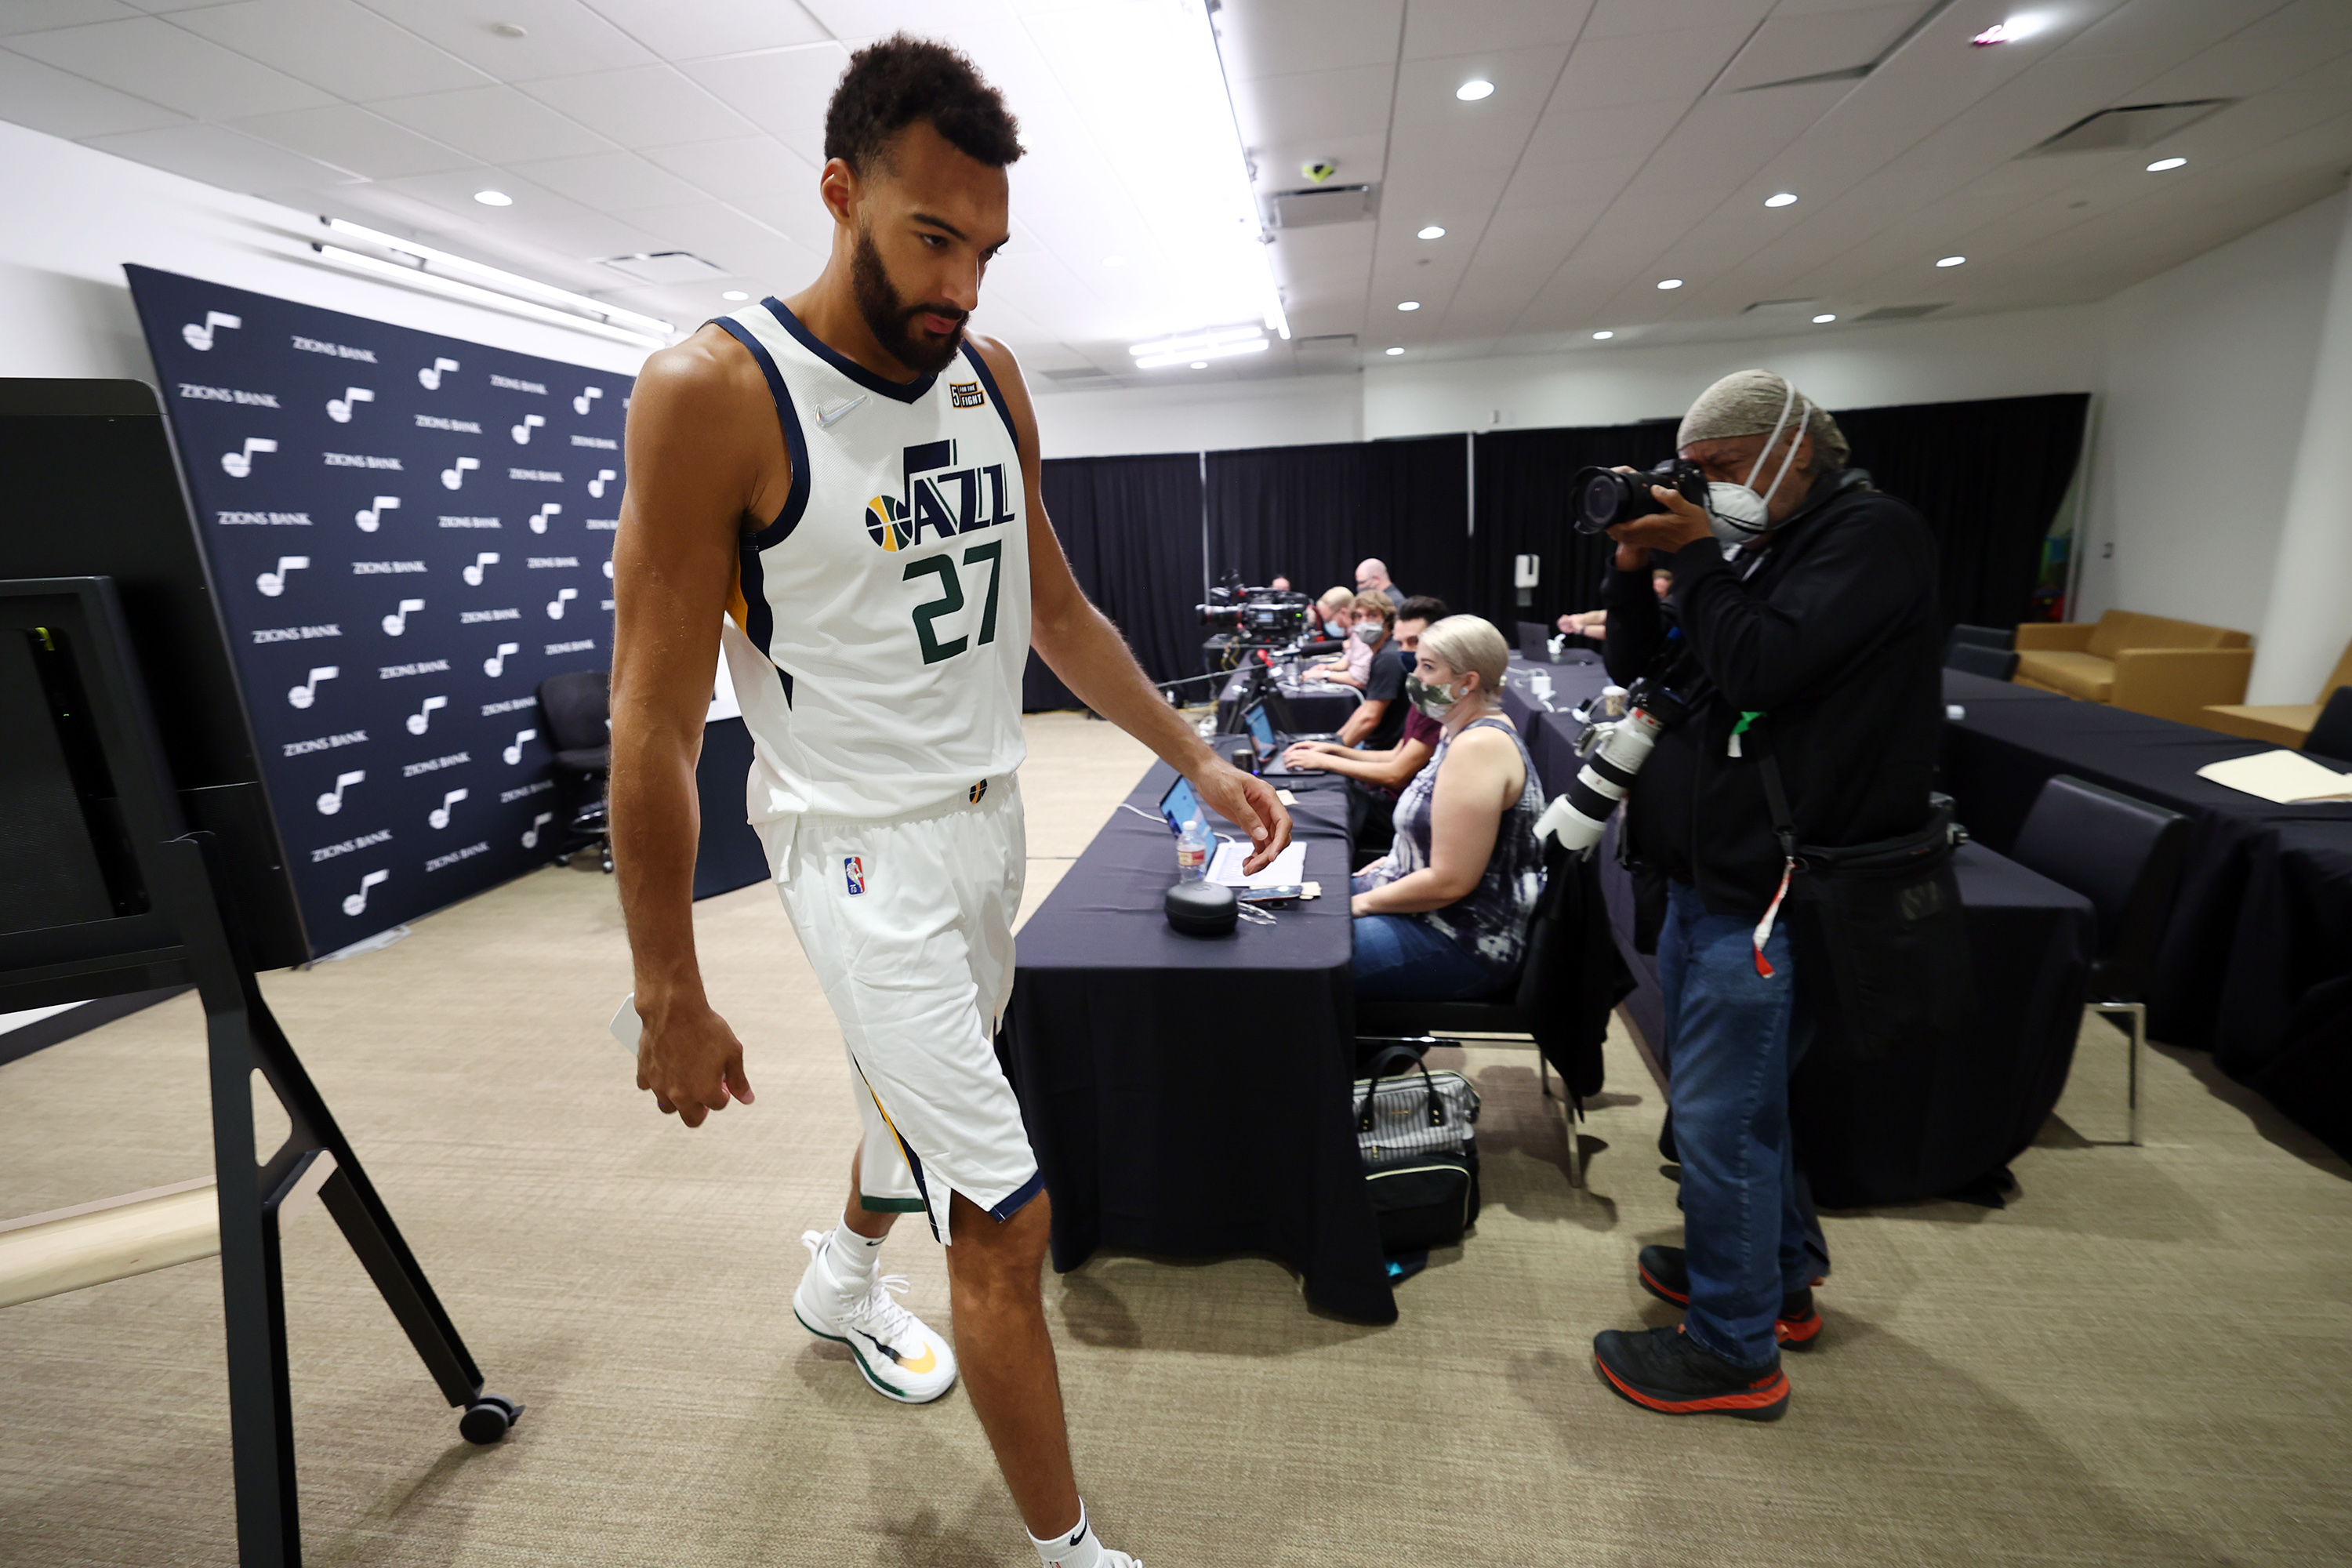 Utah Jazz center Rudy Gobert, wearing a white jersey, exits after an interview during the Utah Jazz media day at Vivint Arena in Salt Lake City.